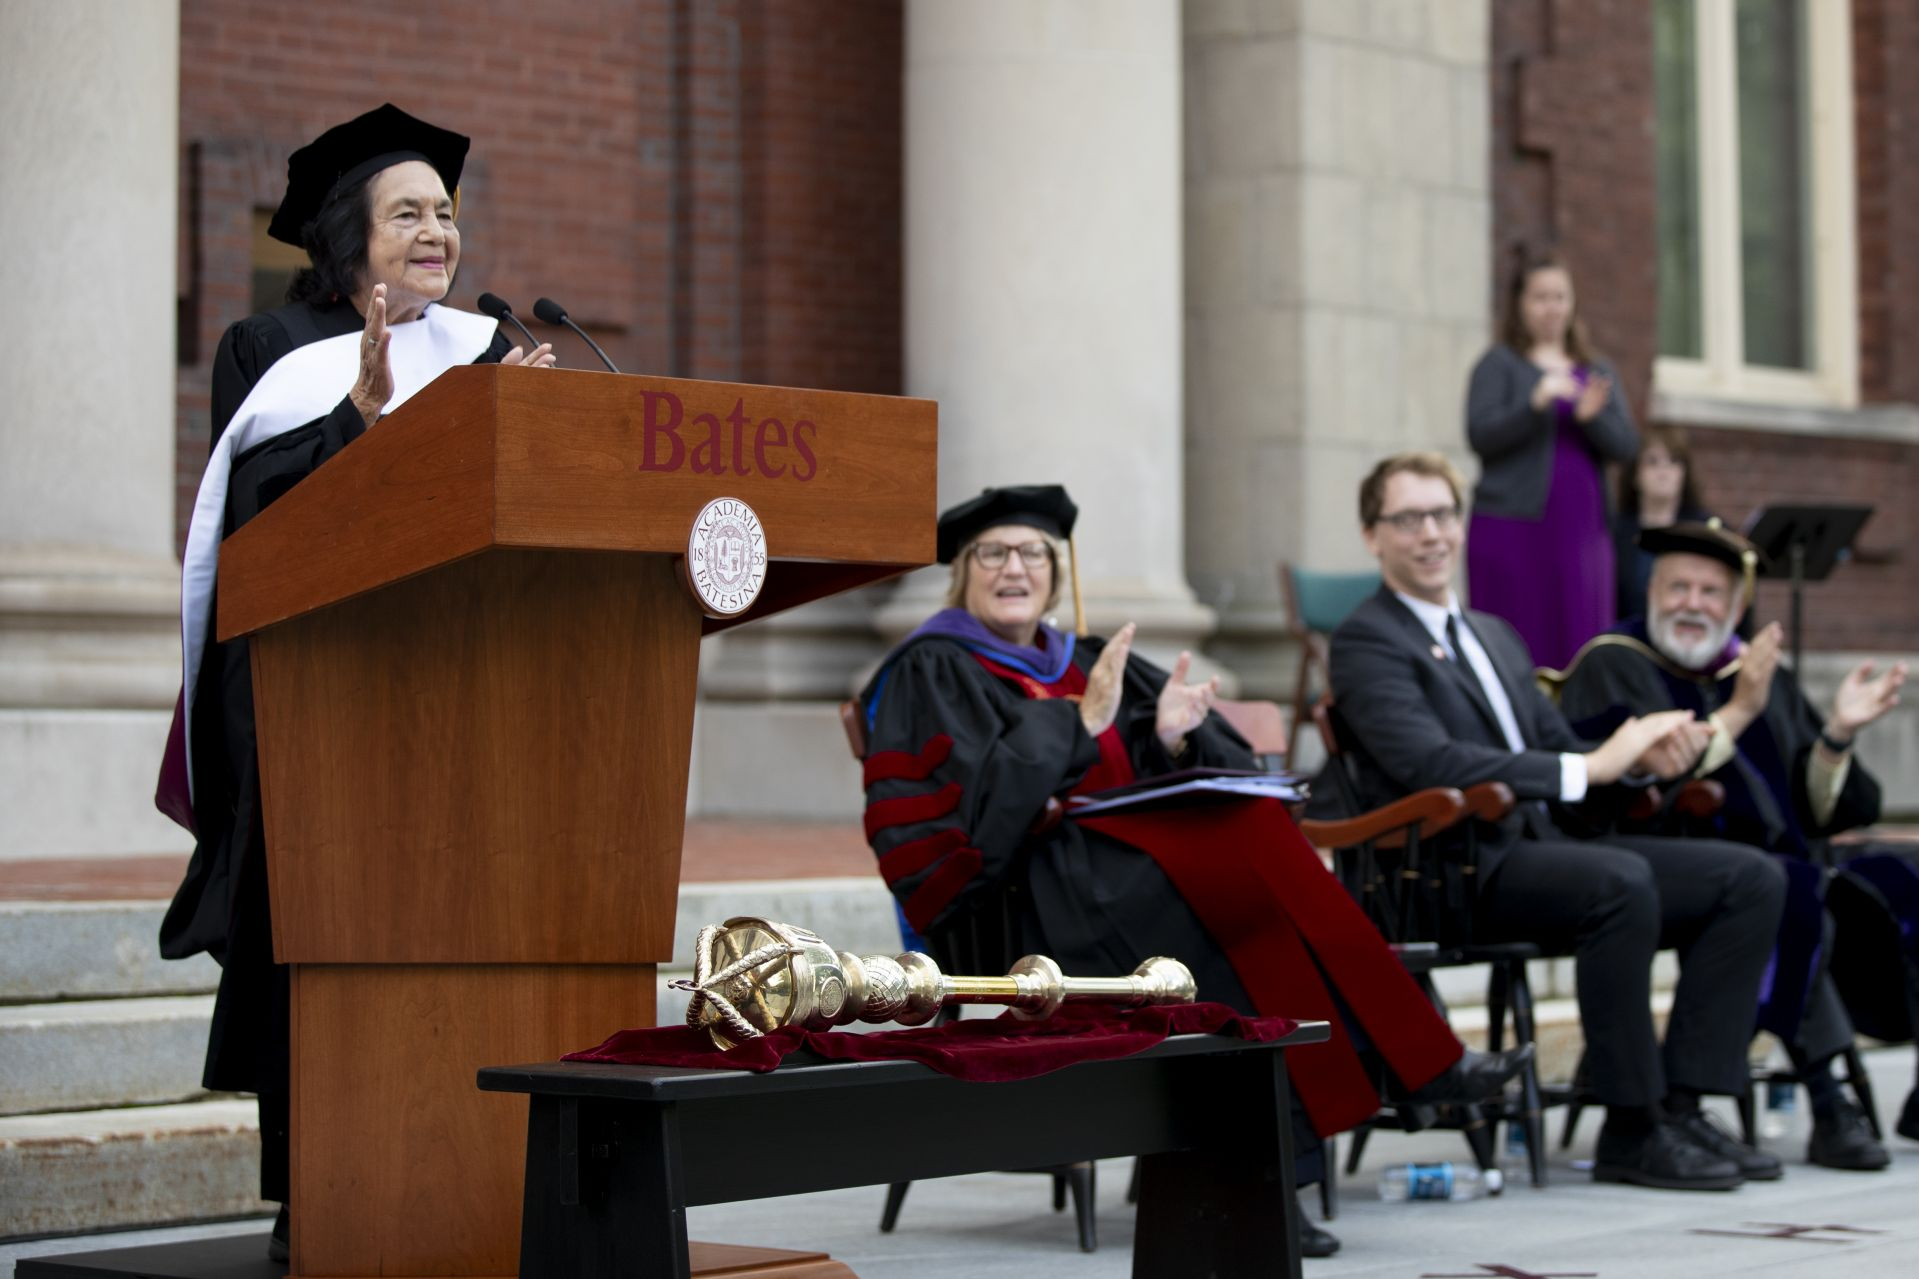 Dolores Huerta's 2019 Opening Convocation address wins an enthusiastic reception. (Phyllis Graber Jensen/Bates College)